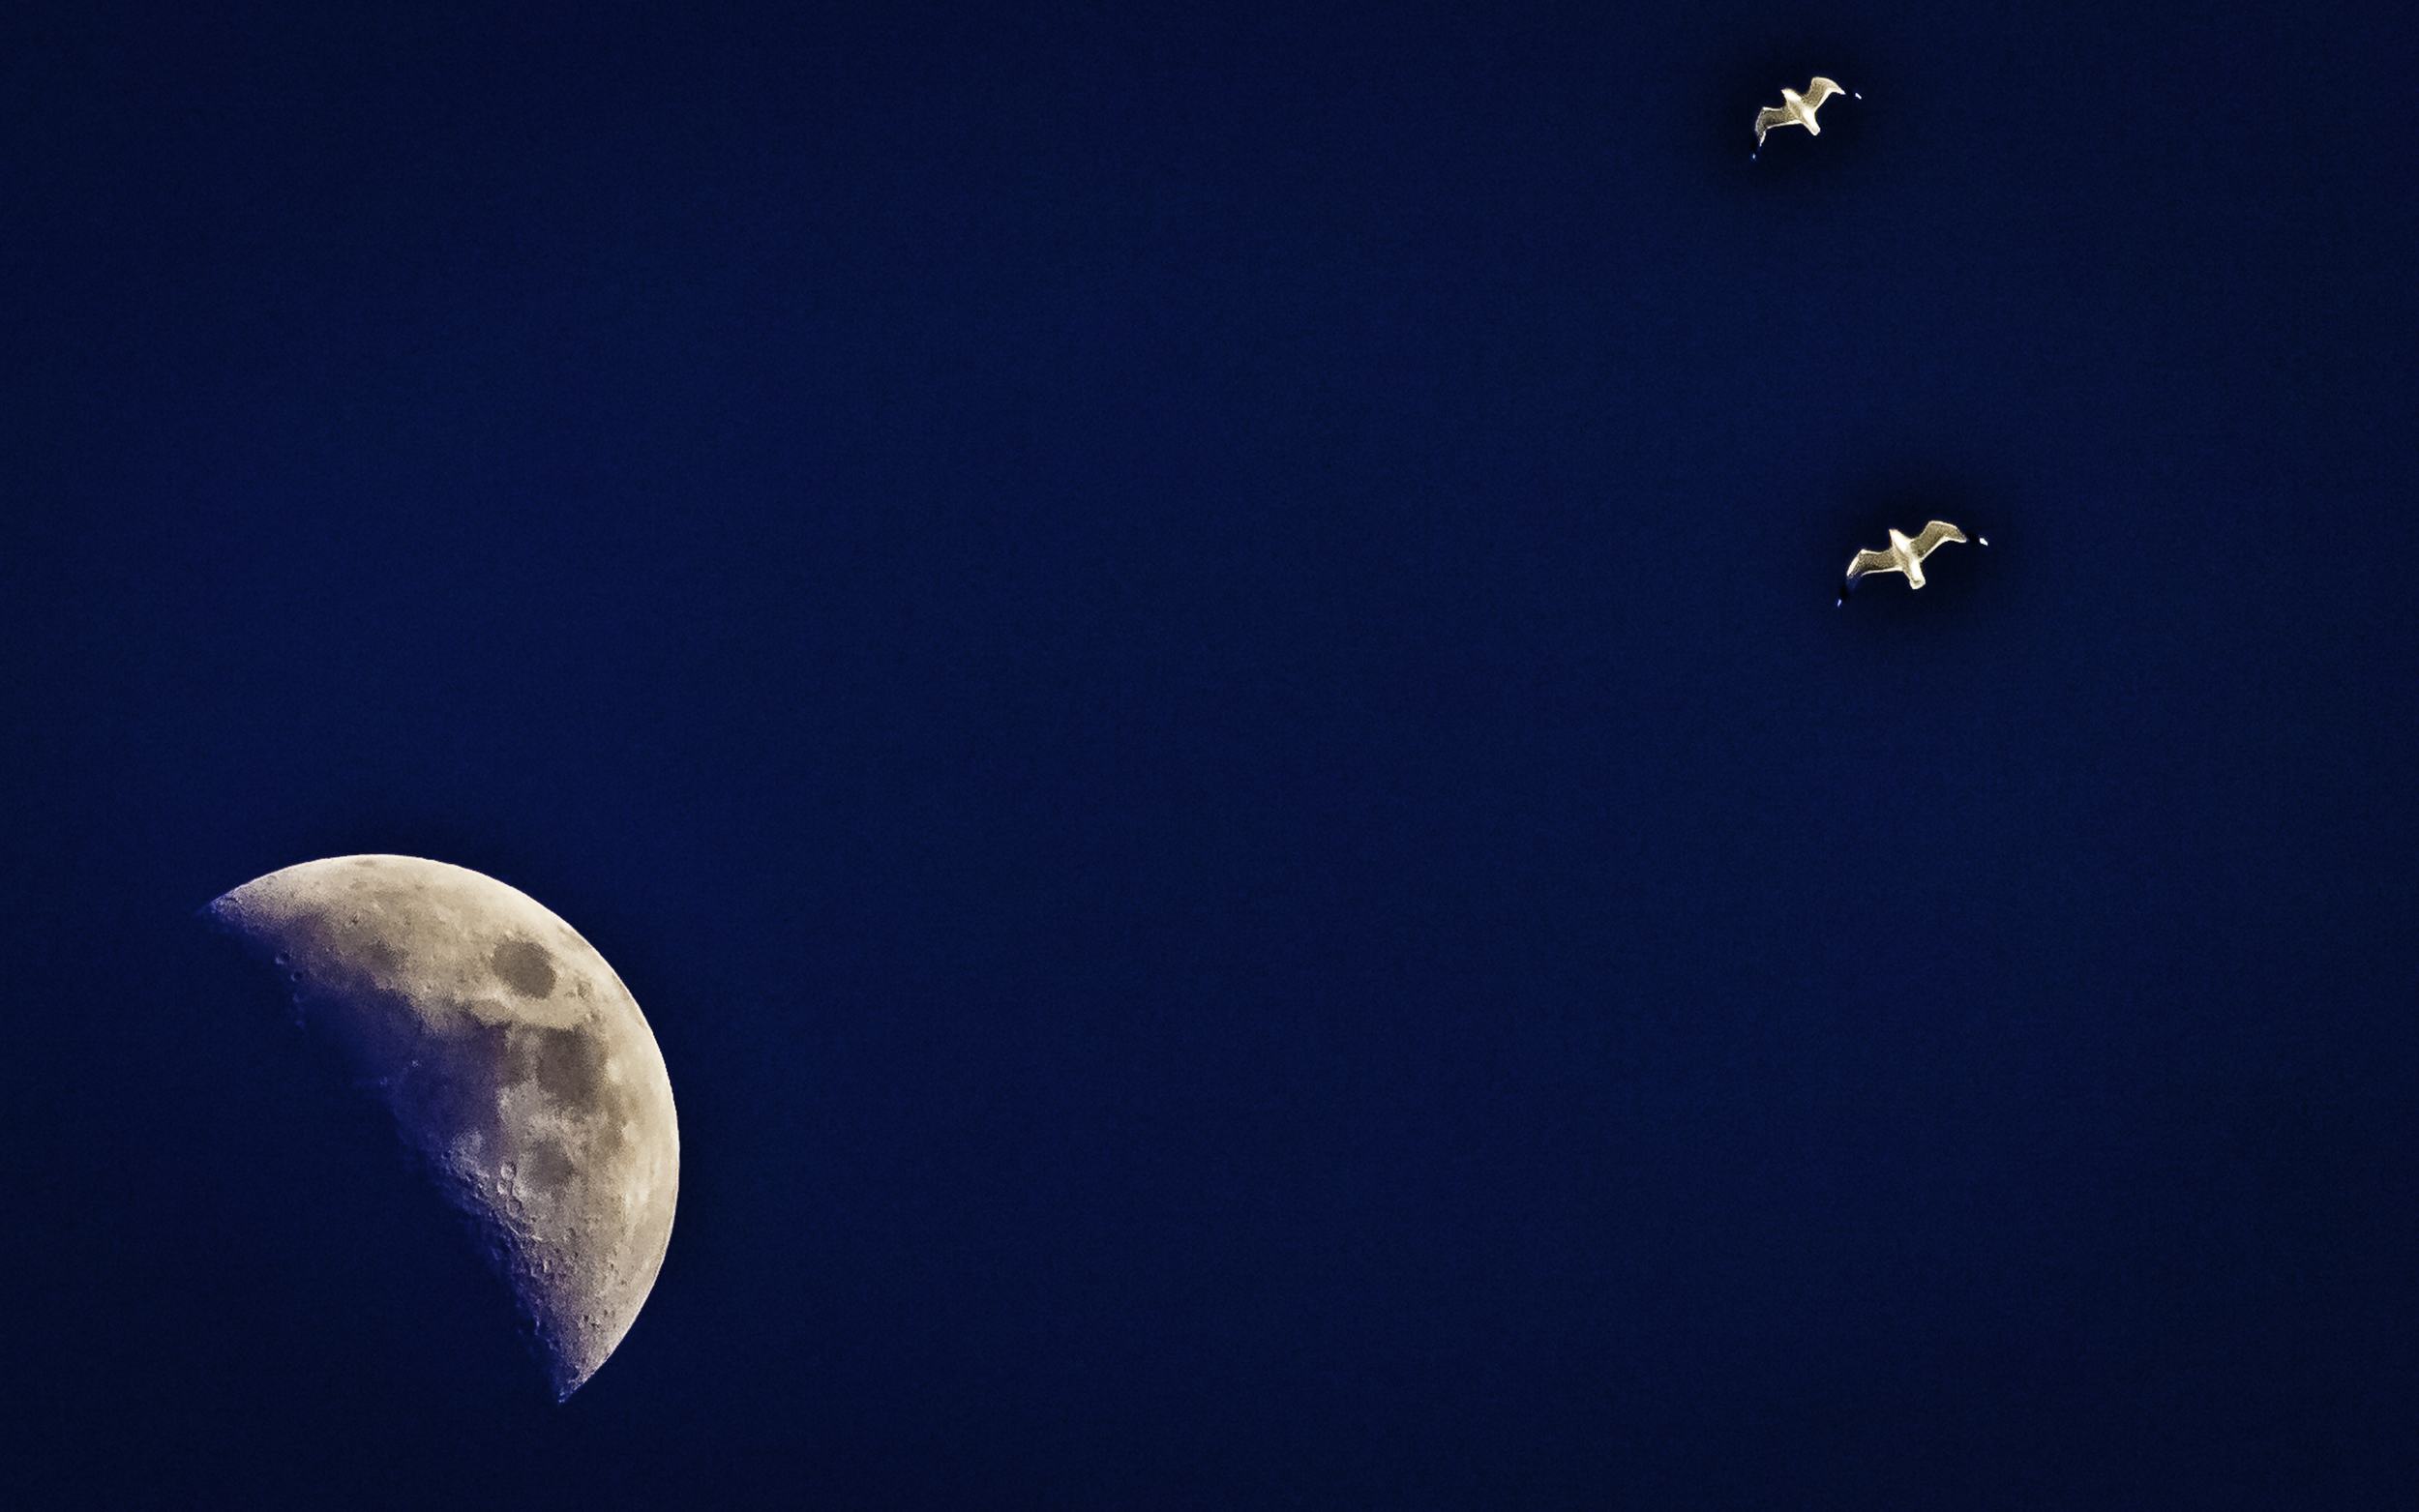 The Moon And Its Two Gull Friends Make a Handsome Threesome